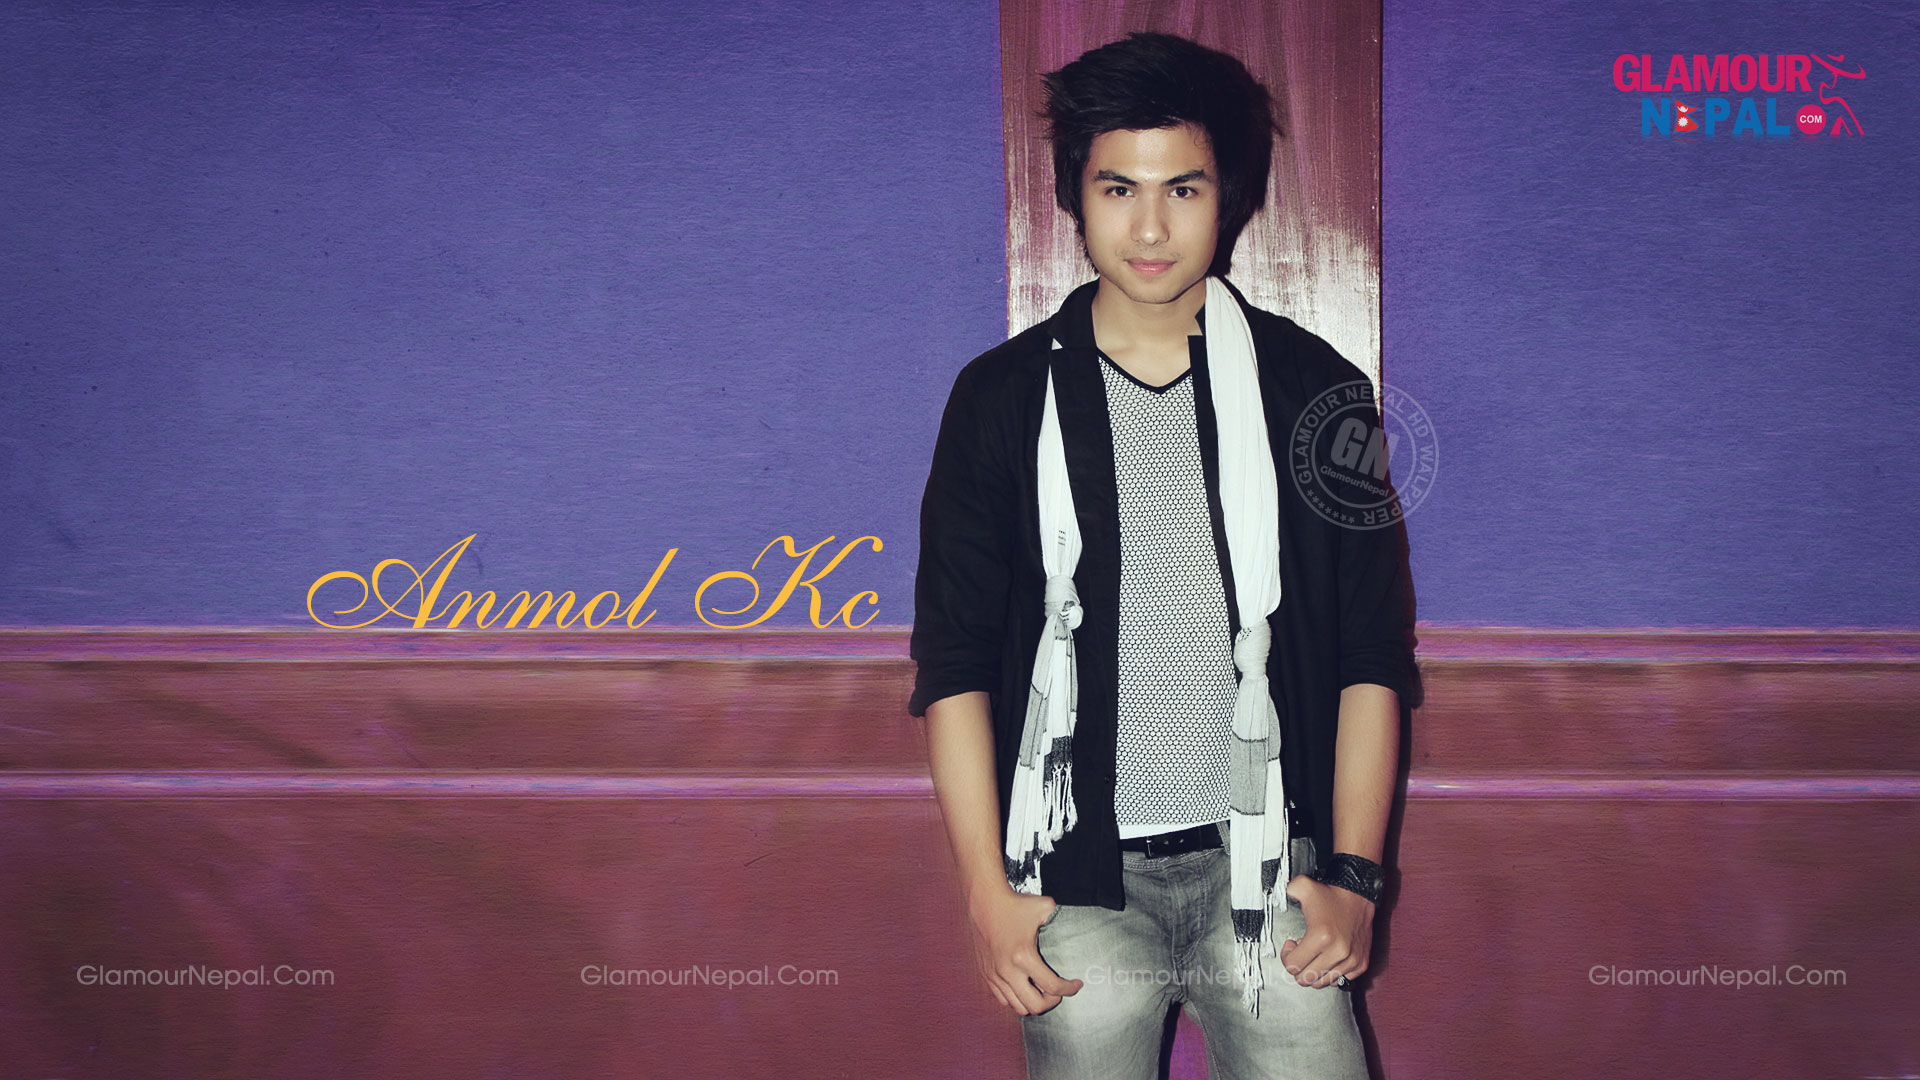 Anmol KC | HD Wallpaper Download 1920x1080 Pixel